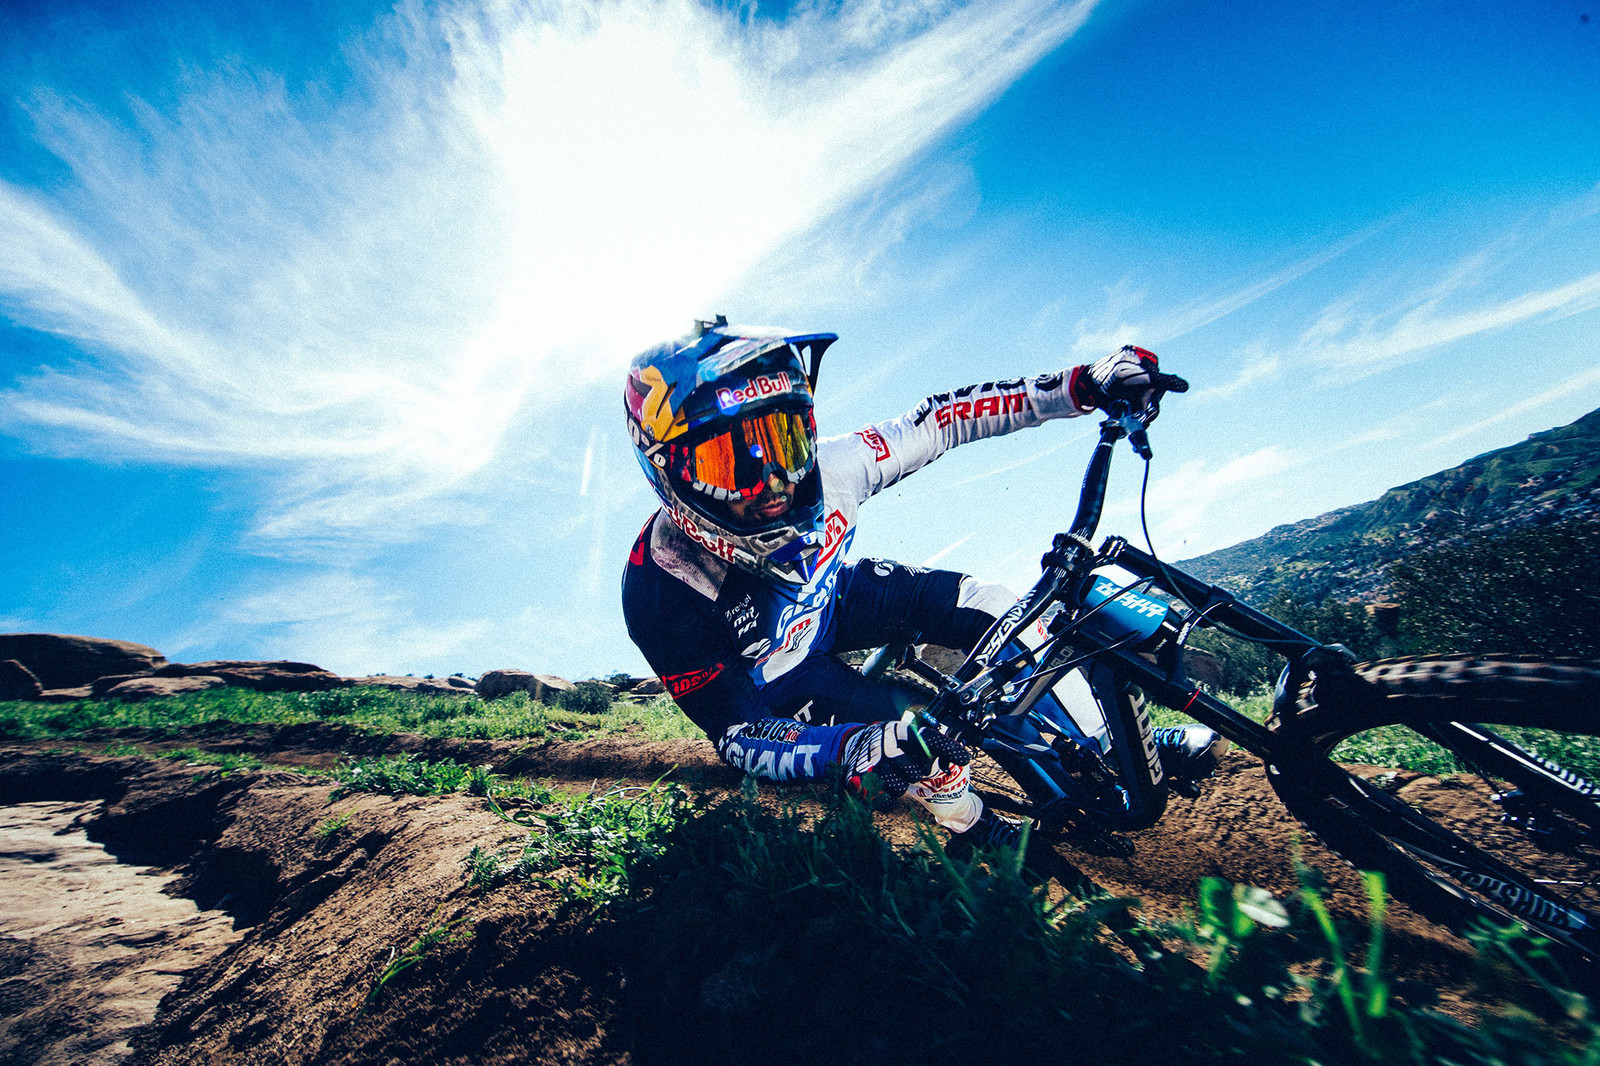 Marcelo Gutierrez: Marcelo Gutierrez is a six-time DH national champion in his home nation of Colombia. For 2017 he will again focus on major downhill races around the world including the UCI World Cup series.